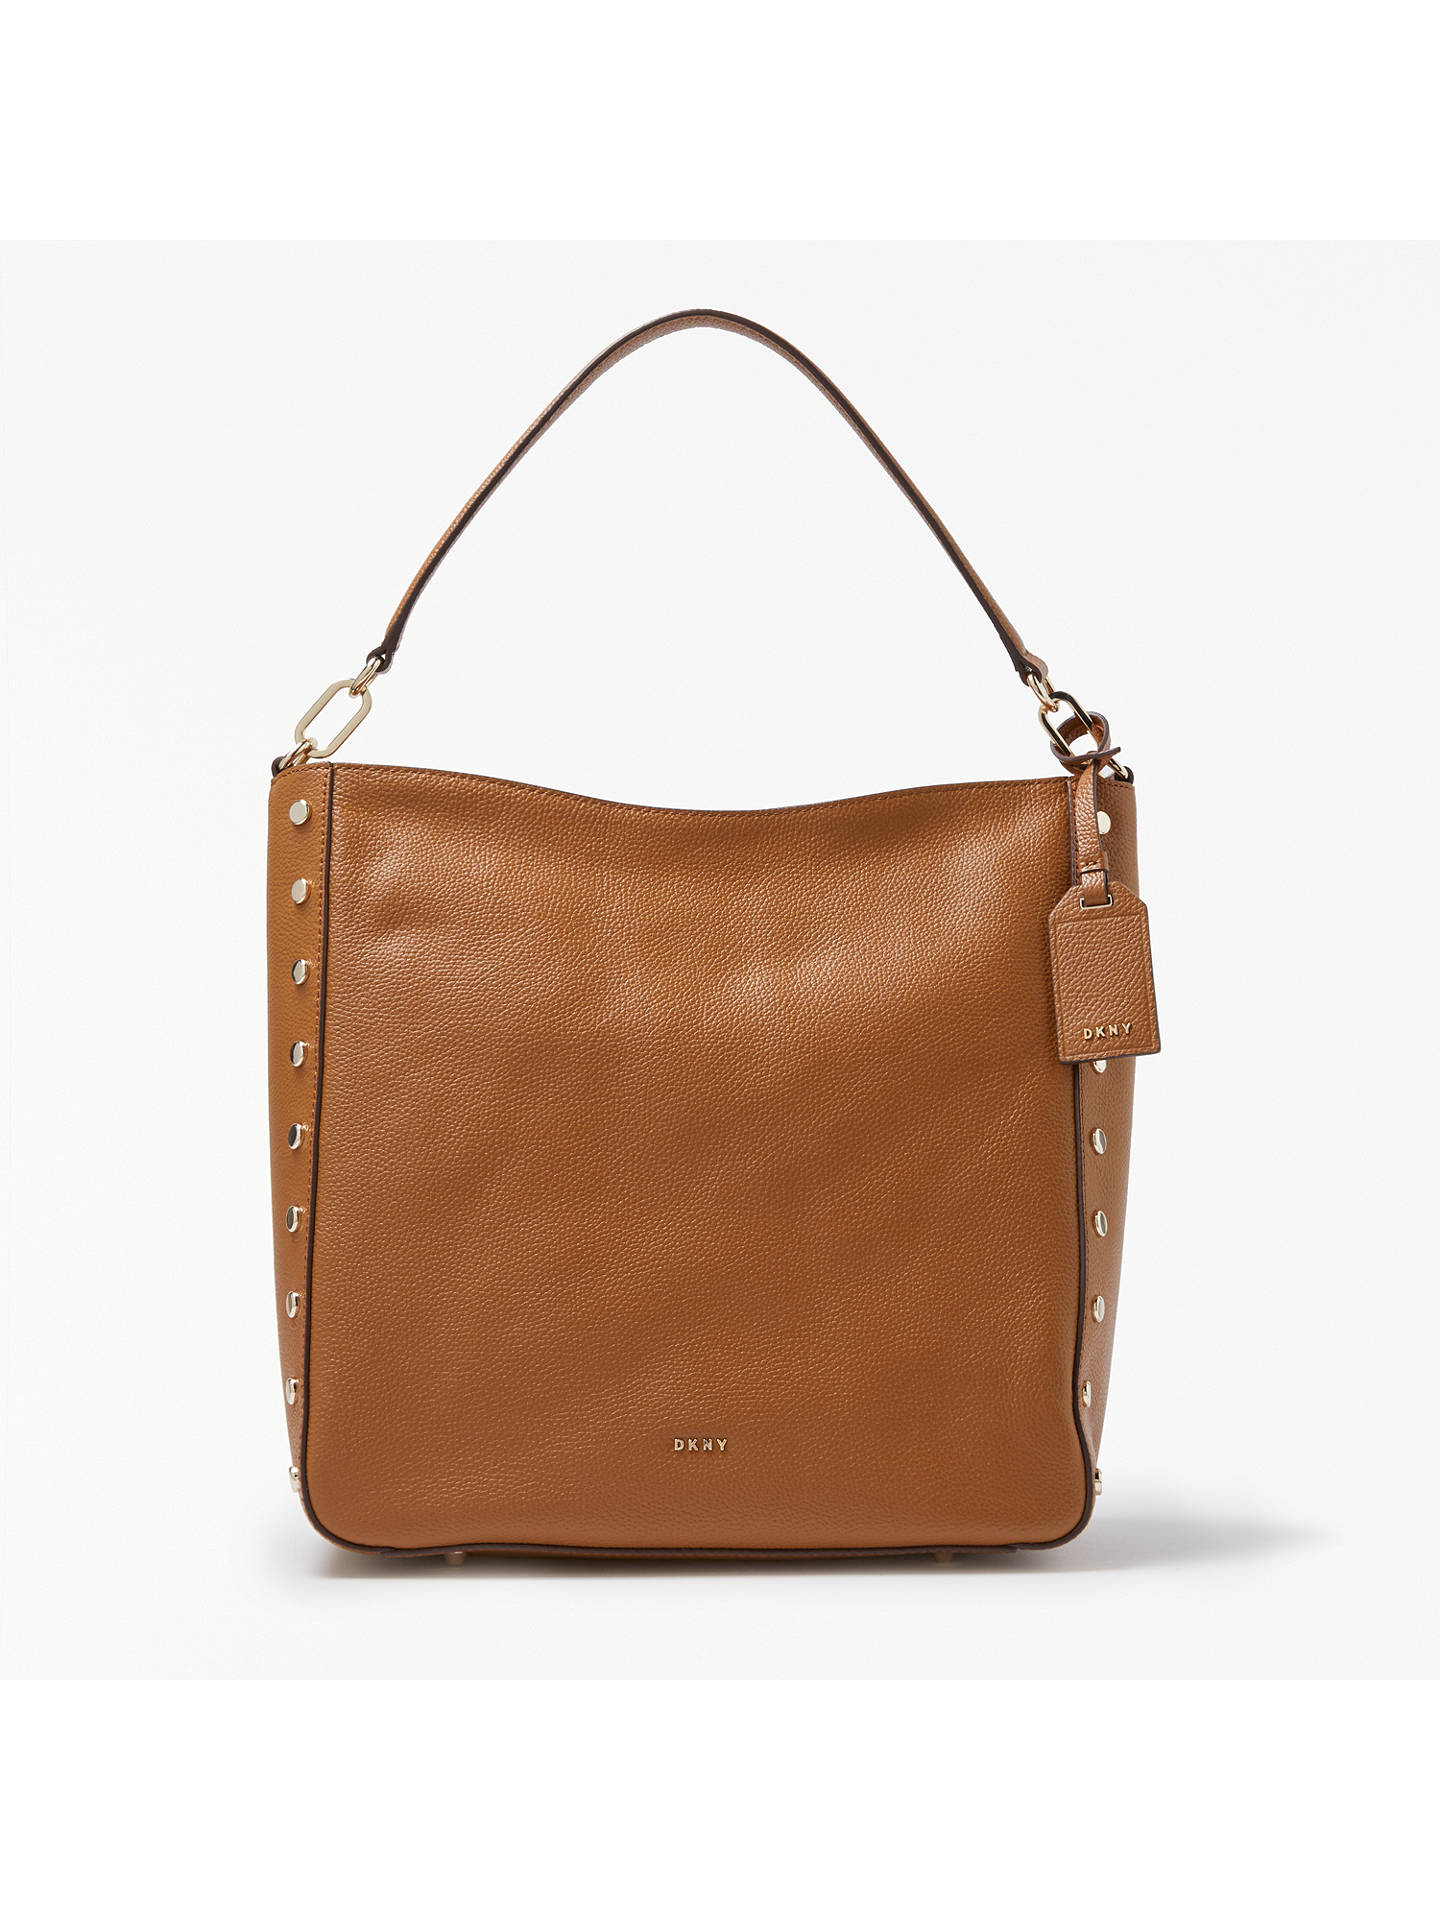 b3985eb5a1f BuyDKNY Chelsea Pebbled Leather Studded Hobo Bag, Camel Online at  johnlewis.com ...